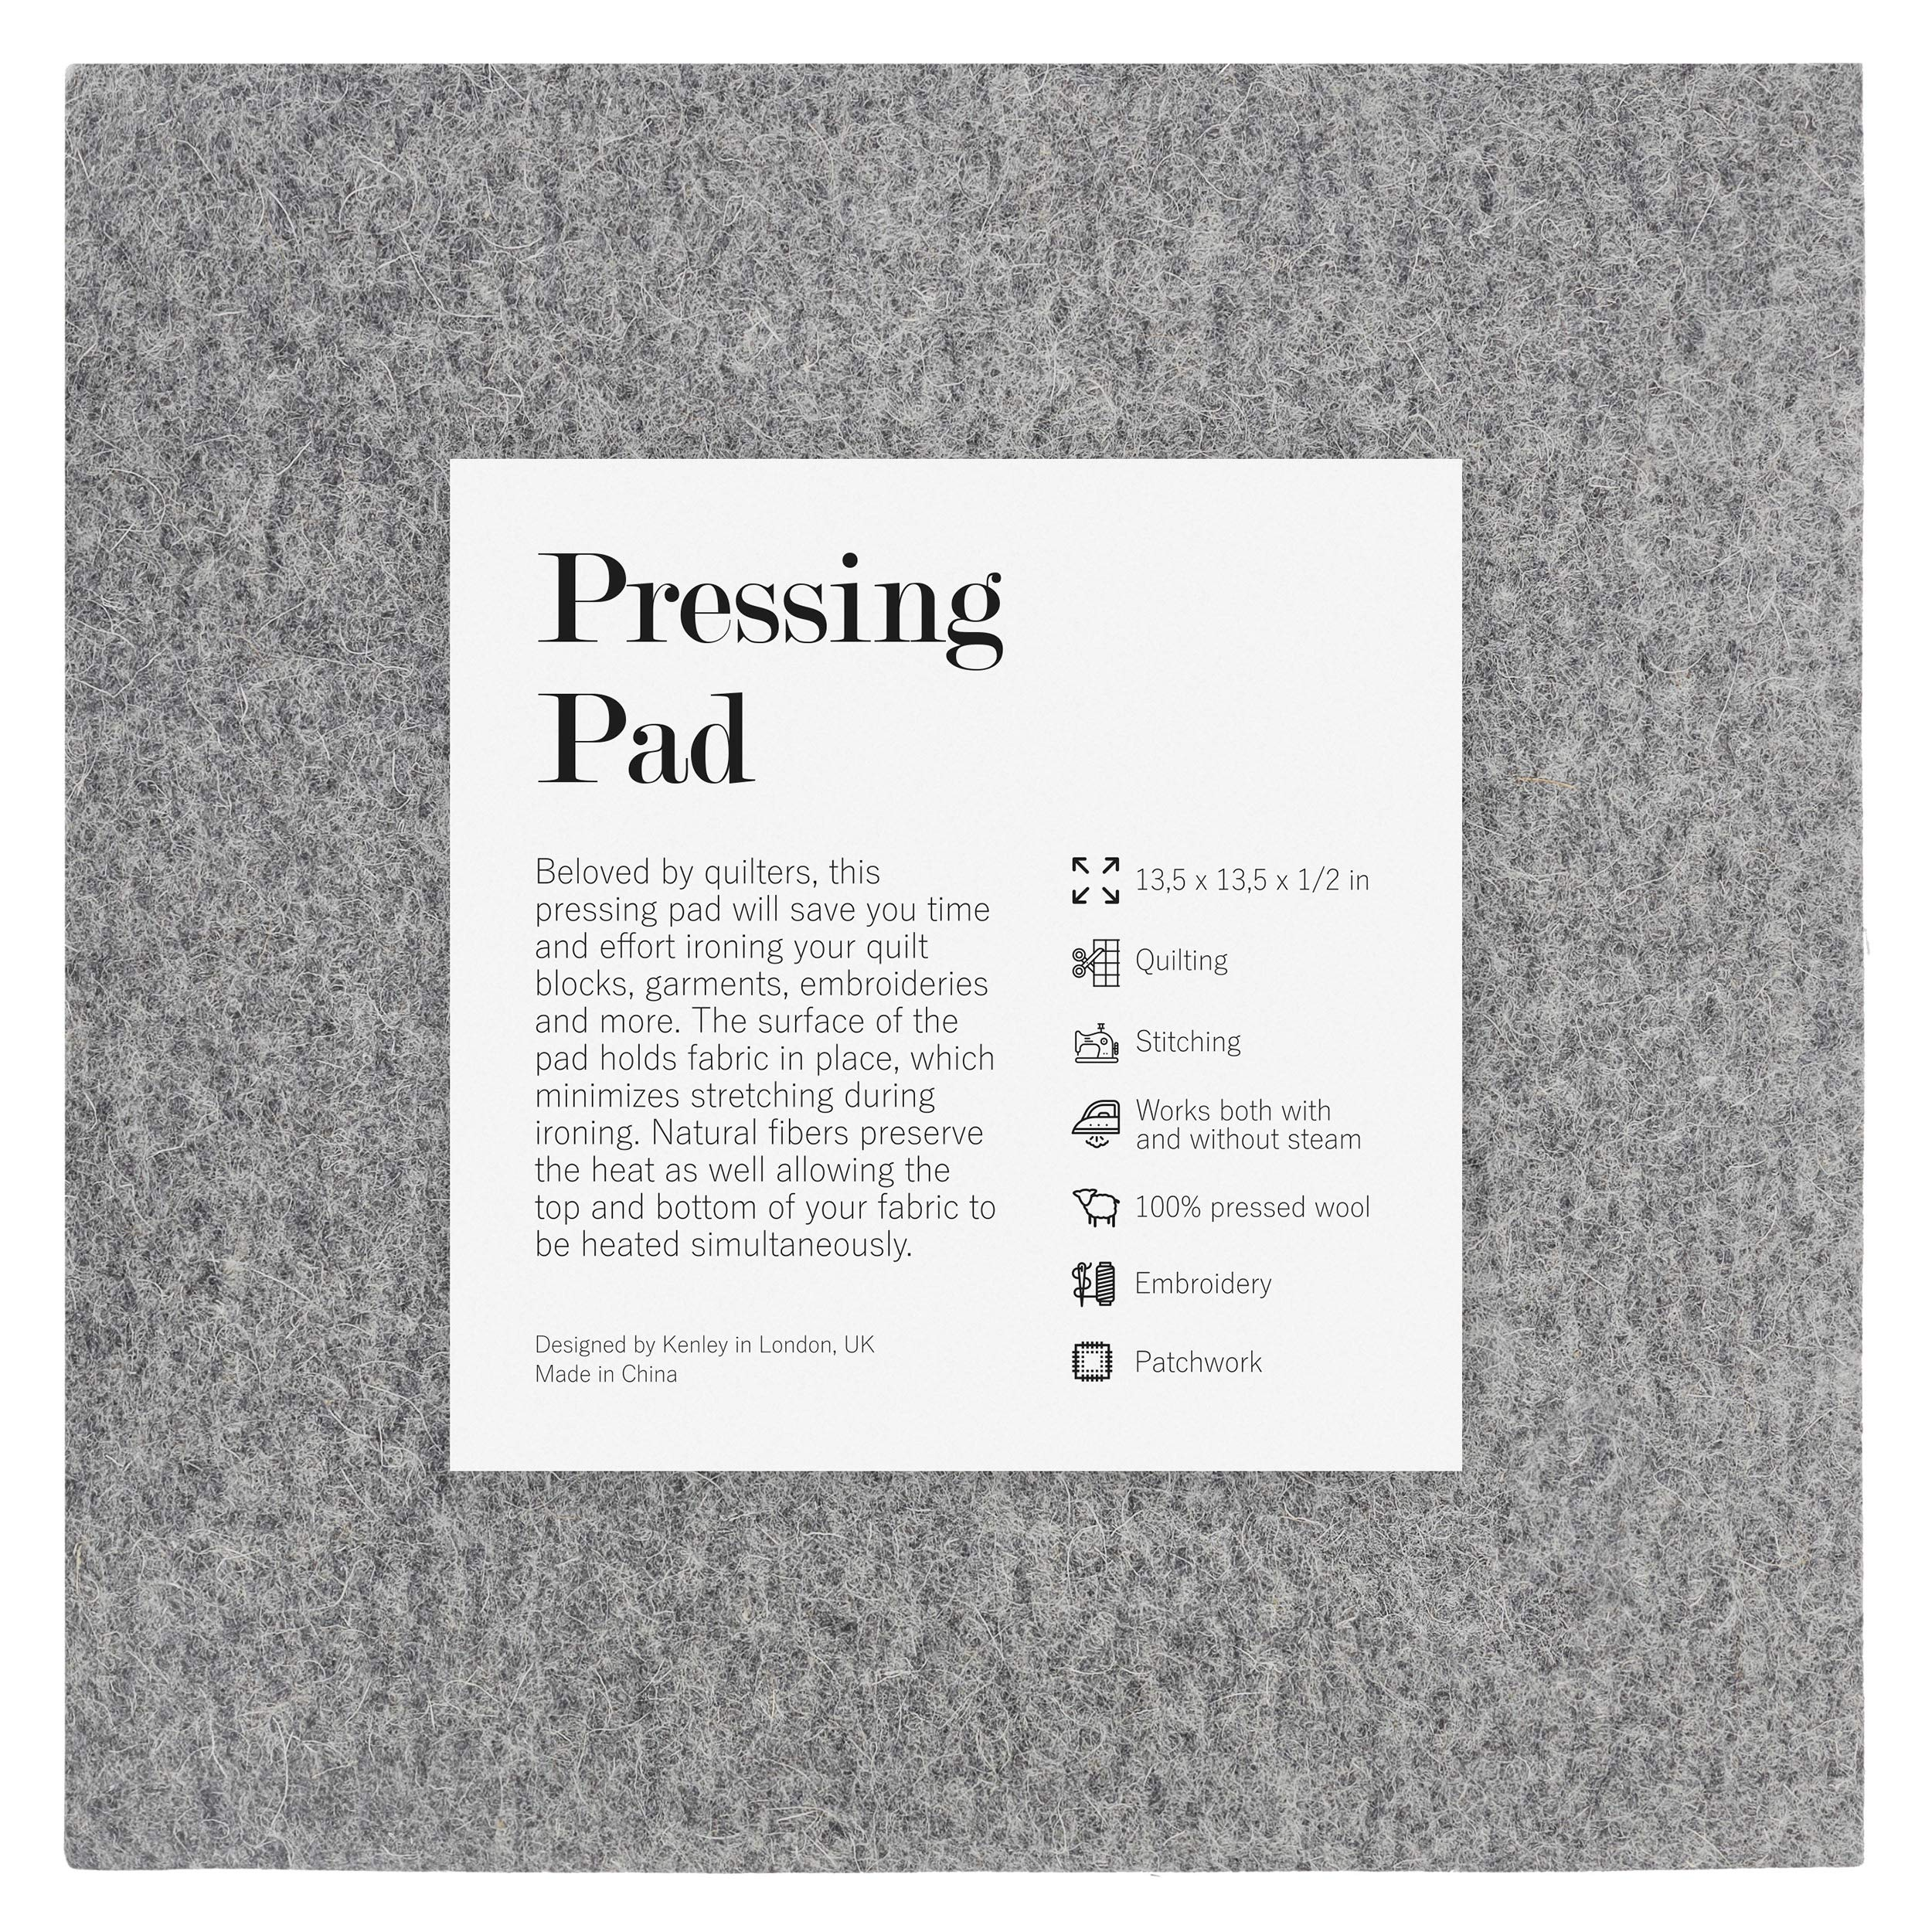 Kenley Wool Pressing Mat for Quilting - 13.5x13.5 Inches Wool Ironing Pad for Quilters - Portable Heat Press Iron Craft Mat for Travel or Classes - Accessories and Gifts for Quilting Embroidery Sewing by Kenley